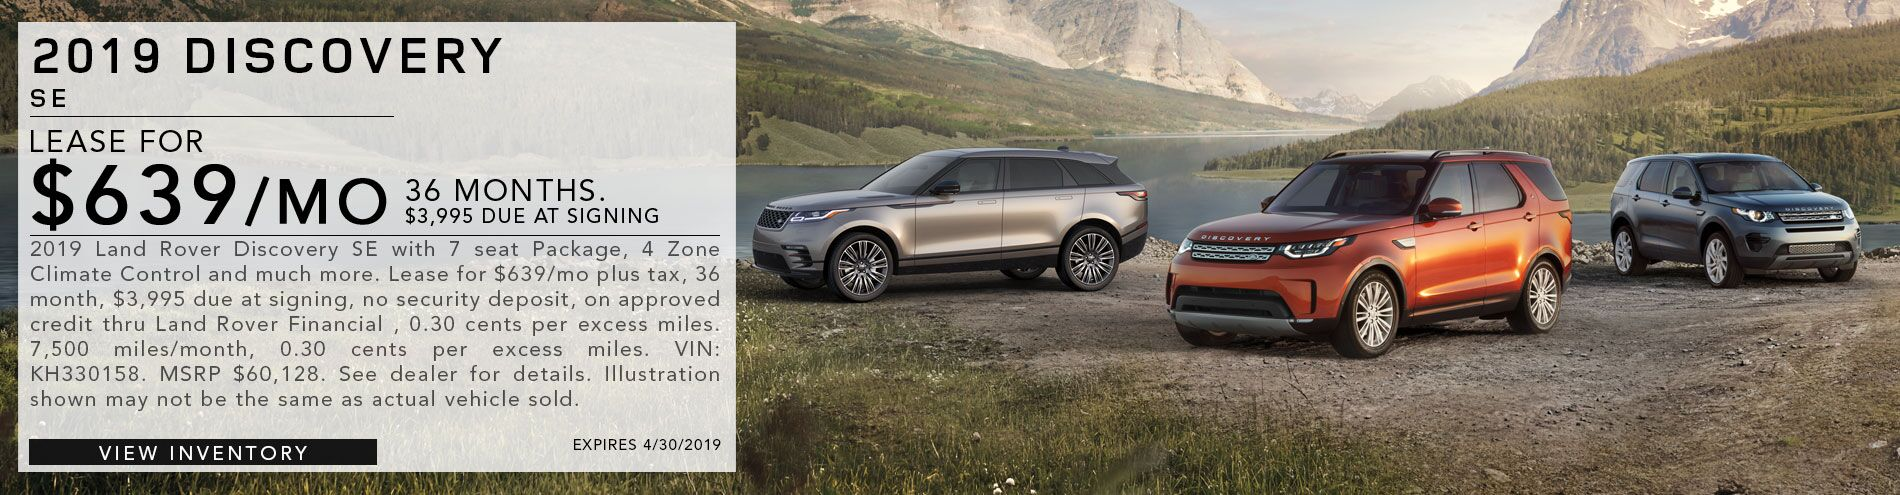 2019 Discovery SE